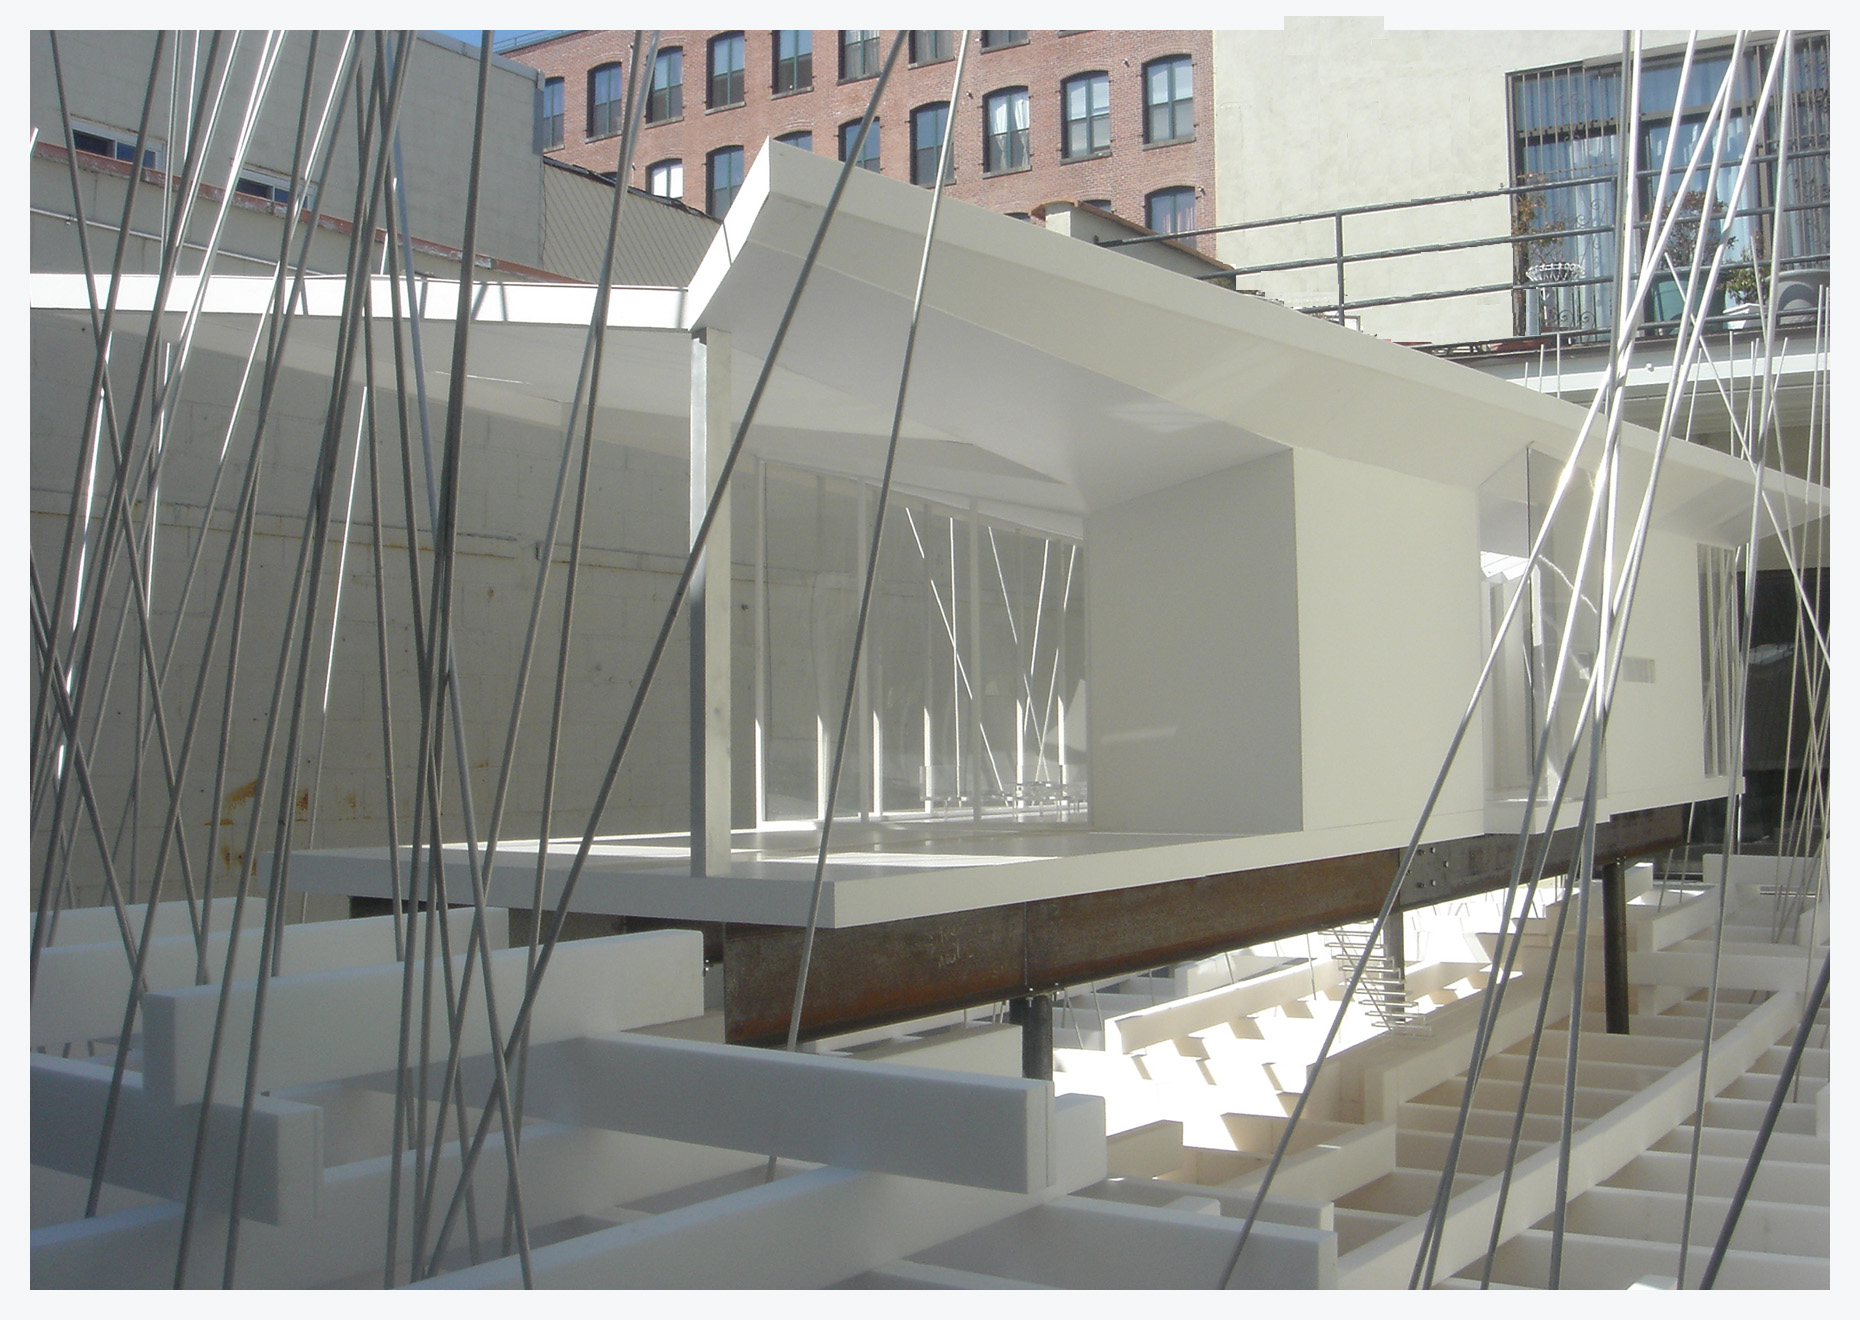 Image: Peter Franck and Kathleen Triem, Model Space, mixed media /©F:T Architecture